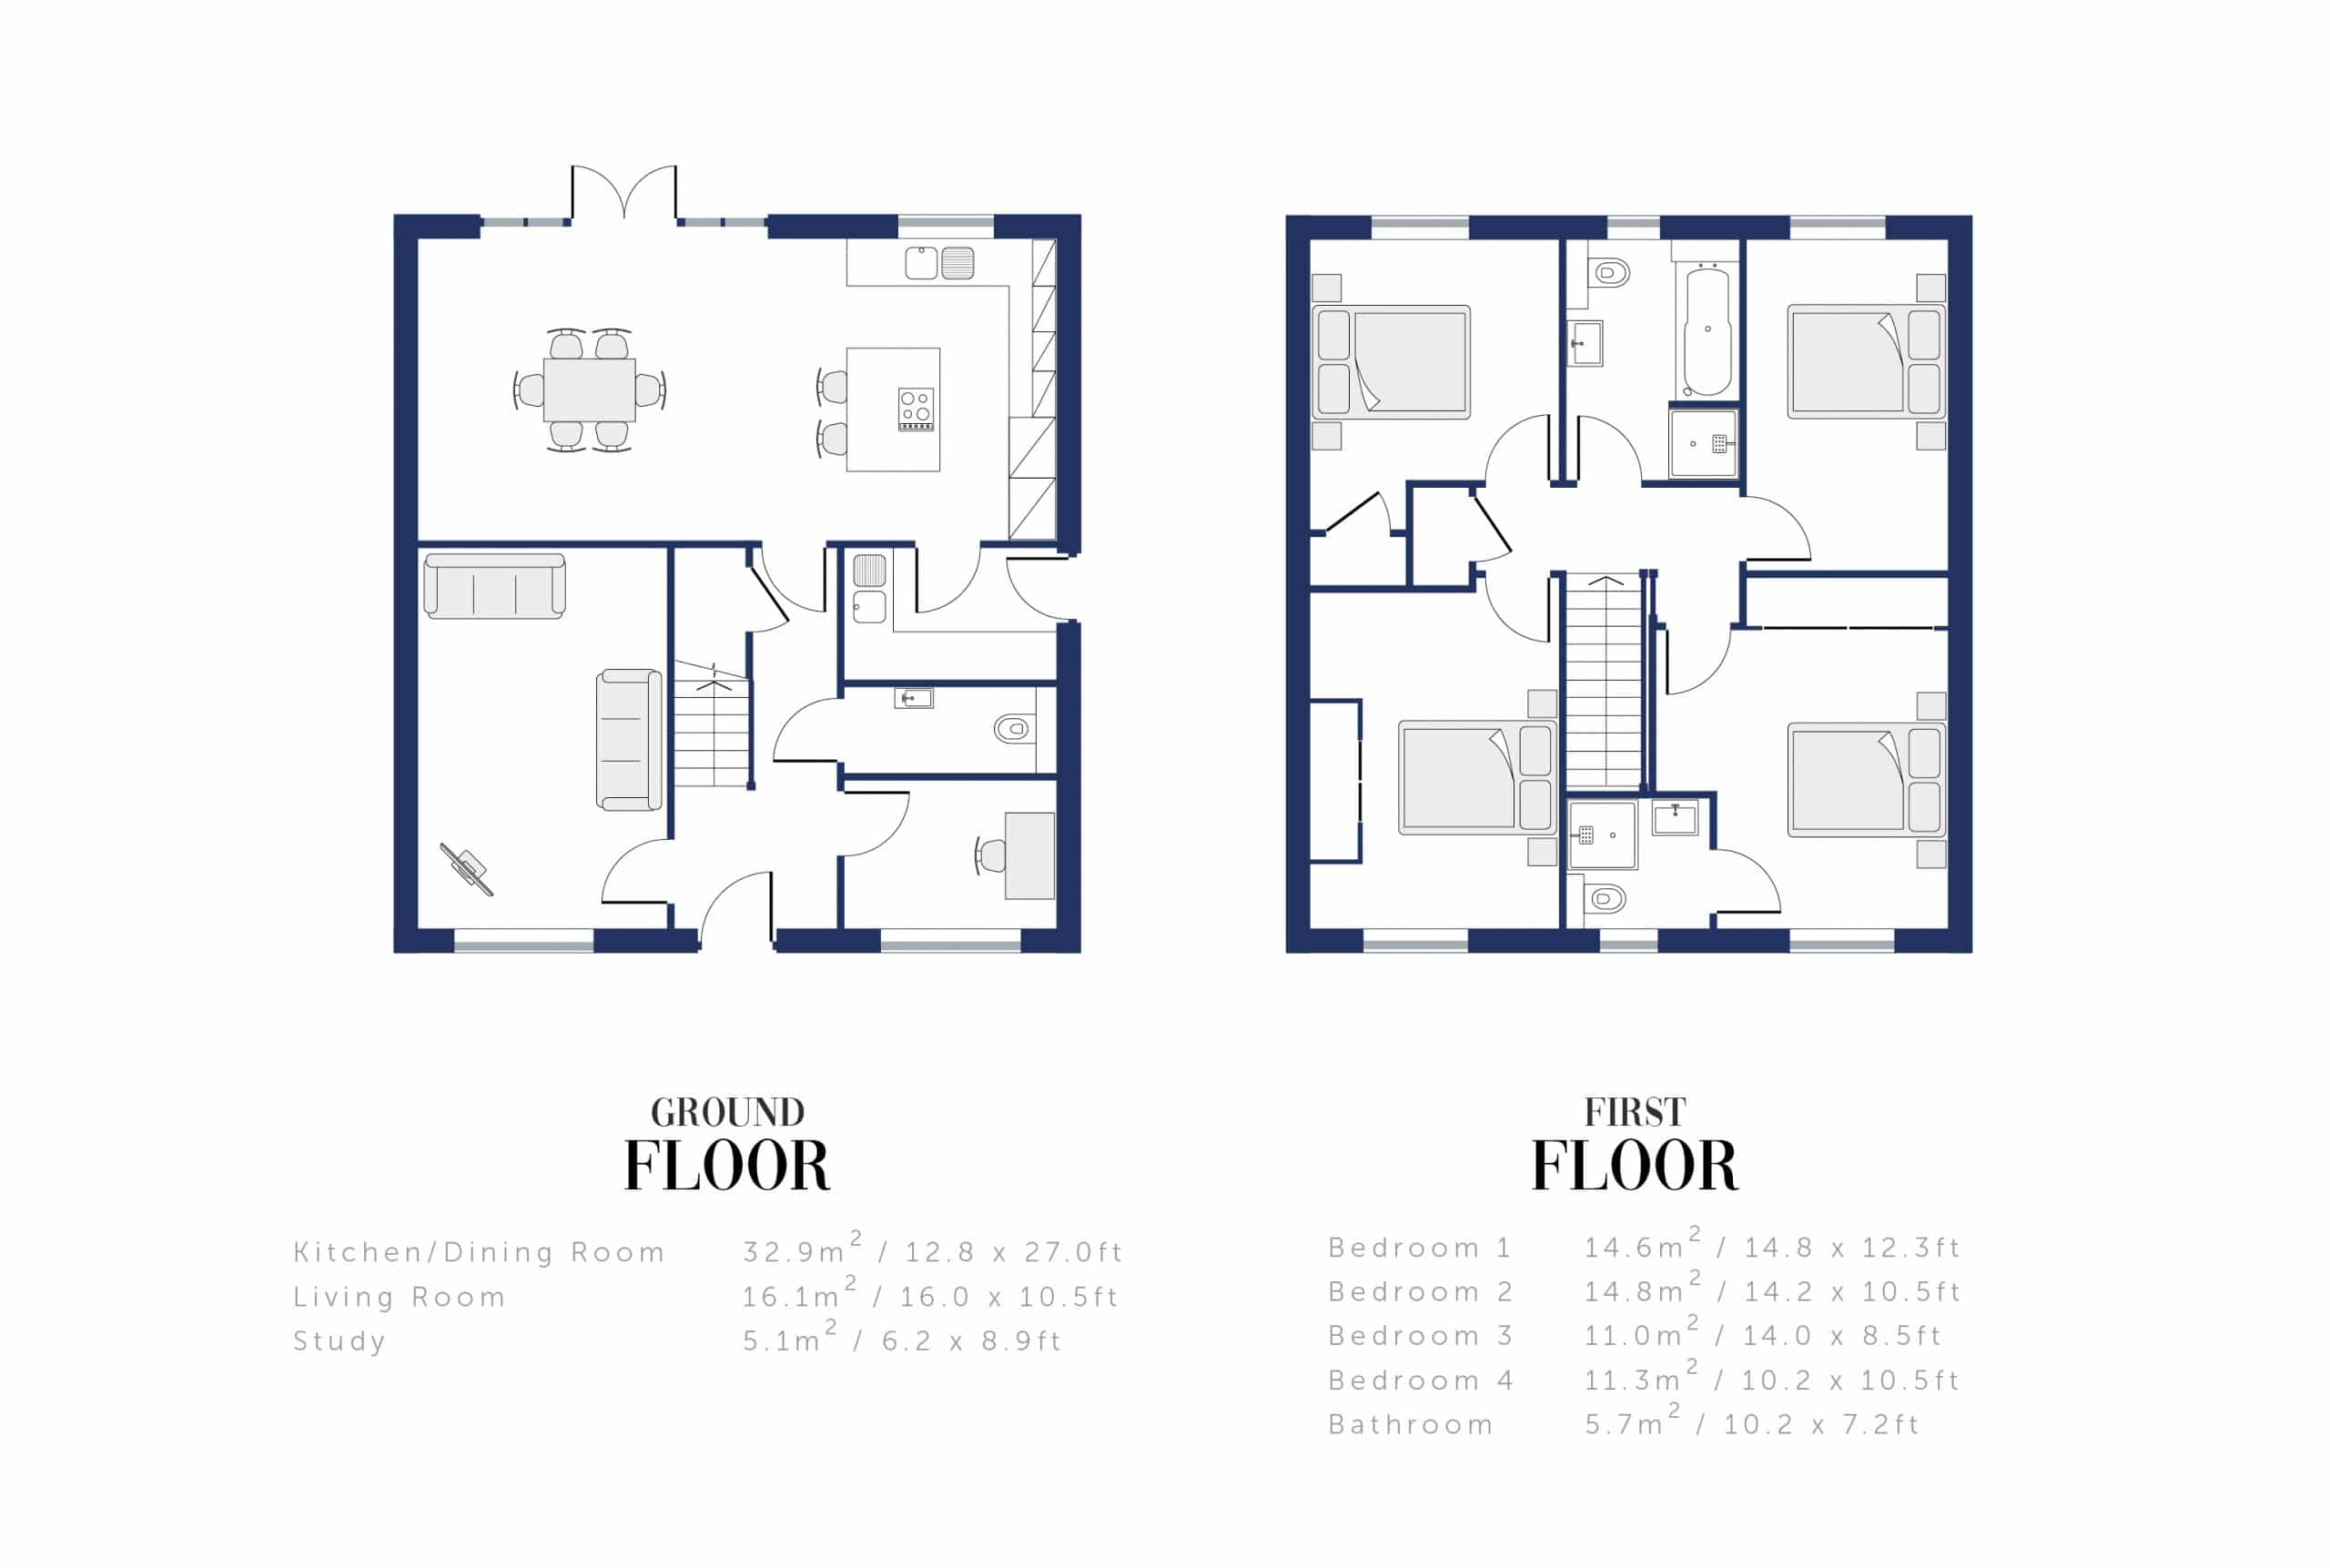 Sunningdale Millers Floor Plan and Sizing for WEB9